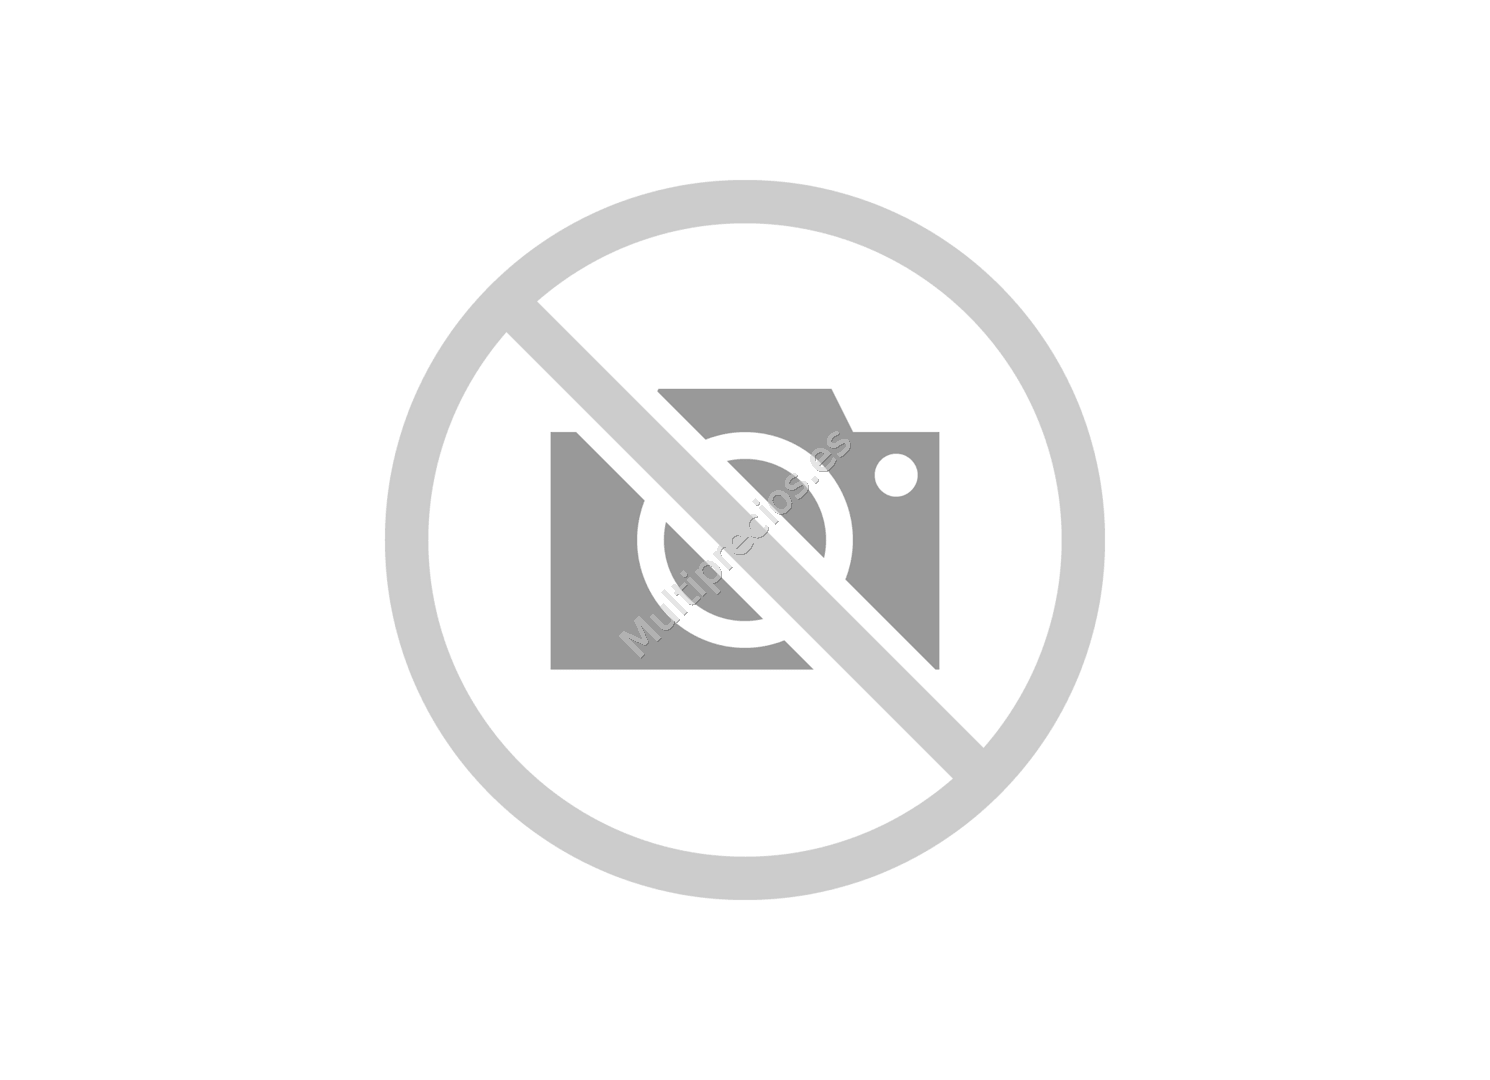 Papel kraft colores 3 mtr.x0.8